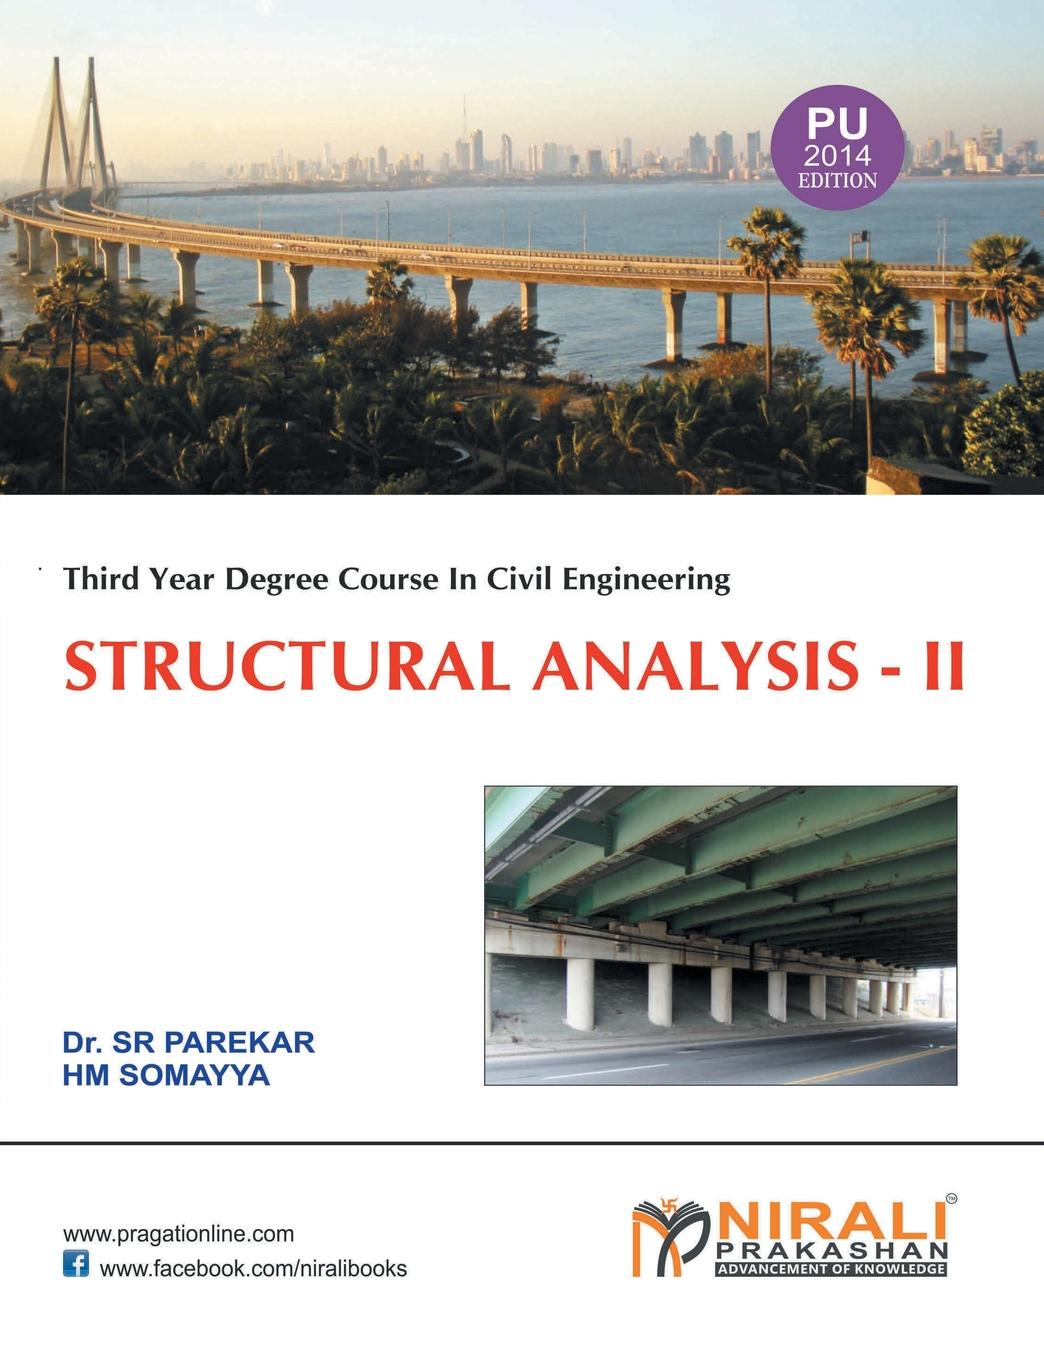 DR S R PAREKAR, H M SOMAYYA STRUCTURAL ANALYSIS II r sugirtharajah s exploring postcolonial biblical criticism history method practice